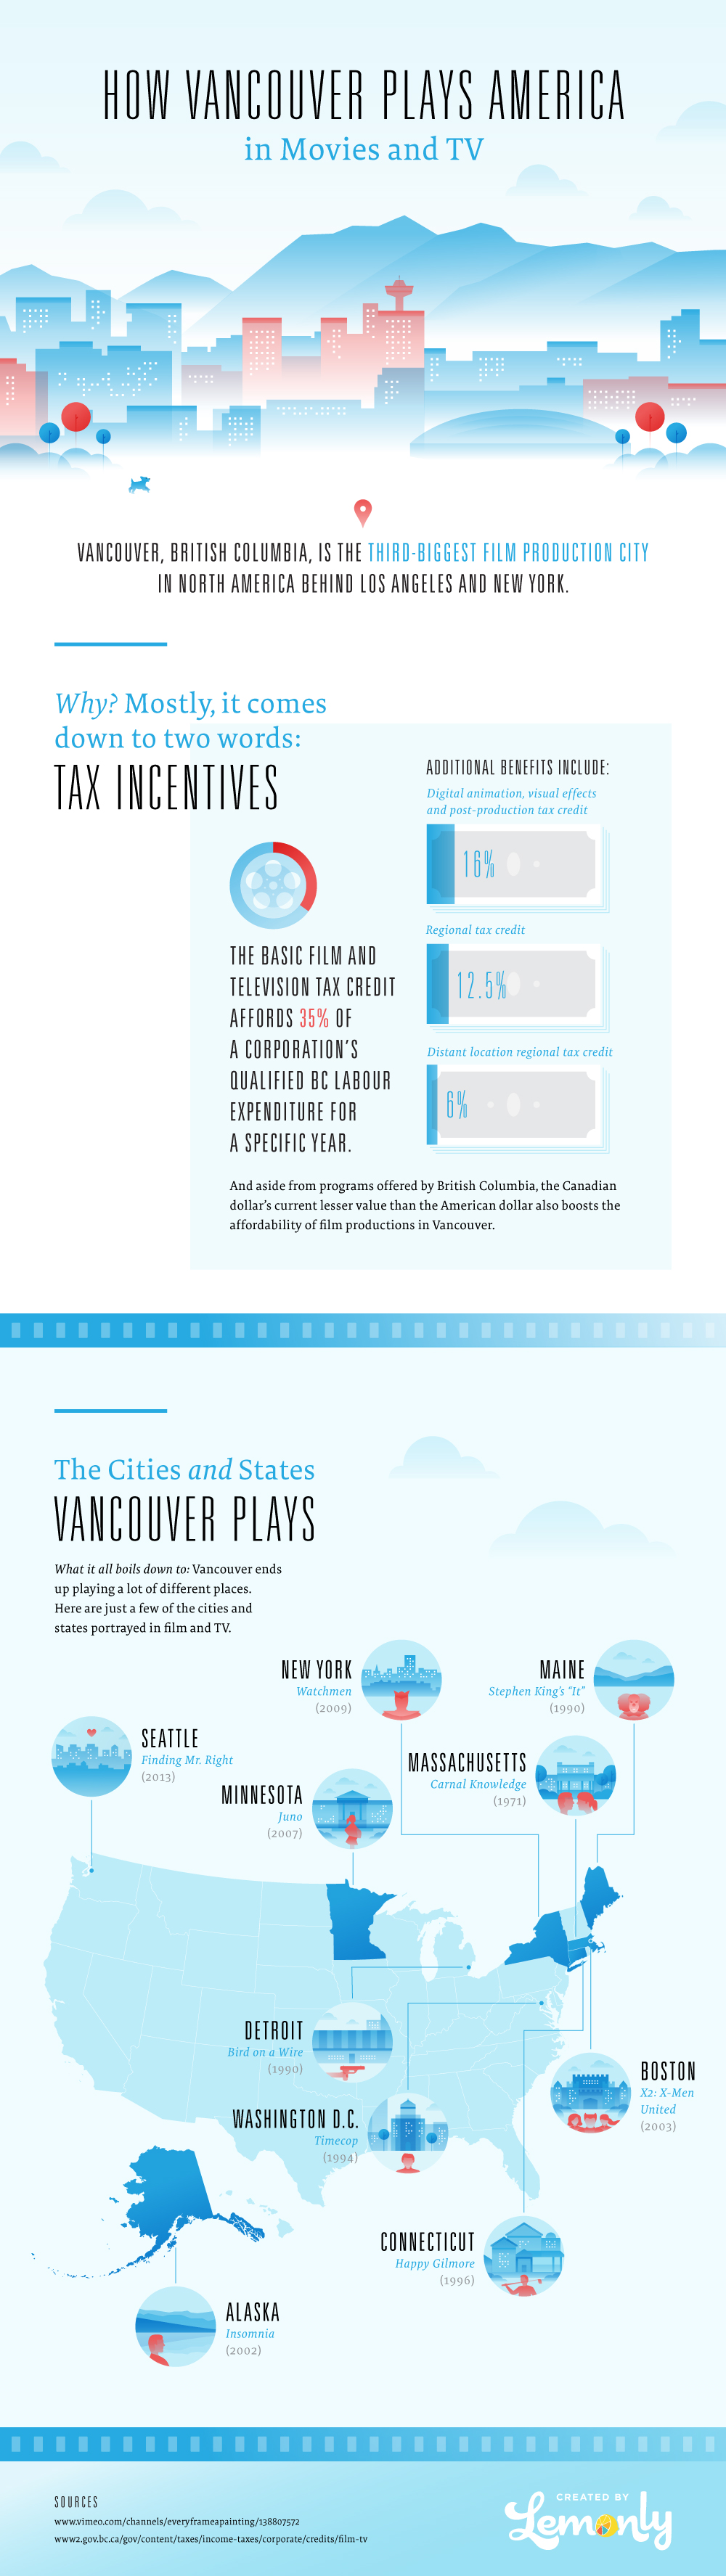 How Vancouver Plays America In Movies And TV